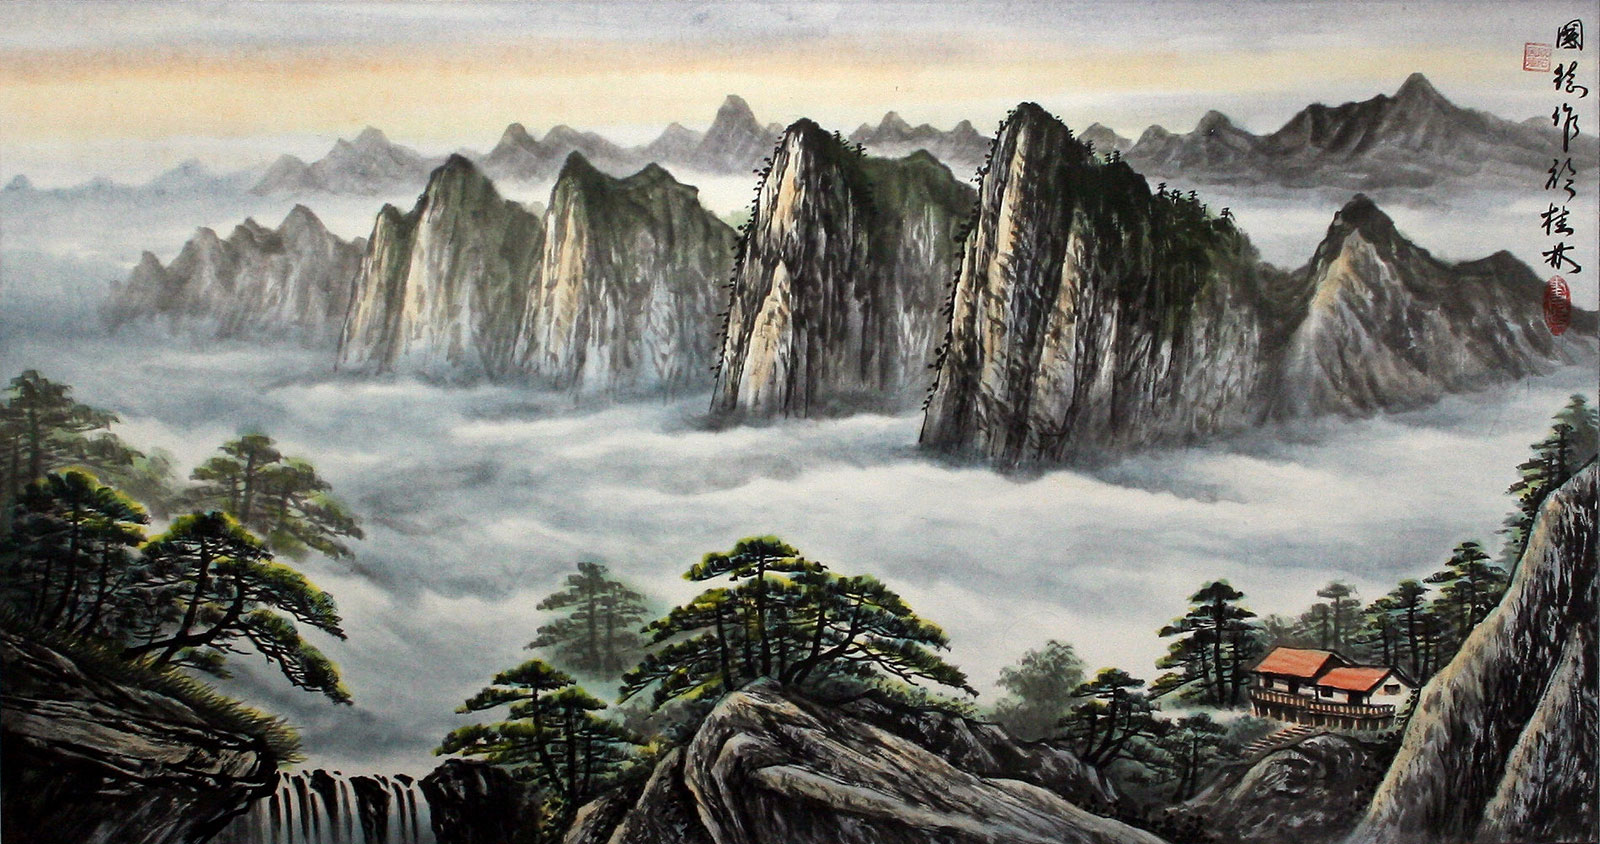 Chinese Japanese Landscape Paintings - Hot Girls Wallpaper